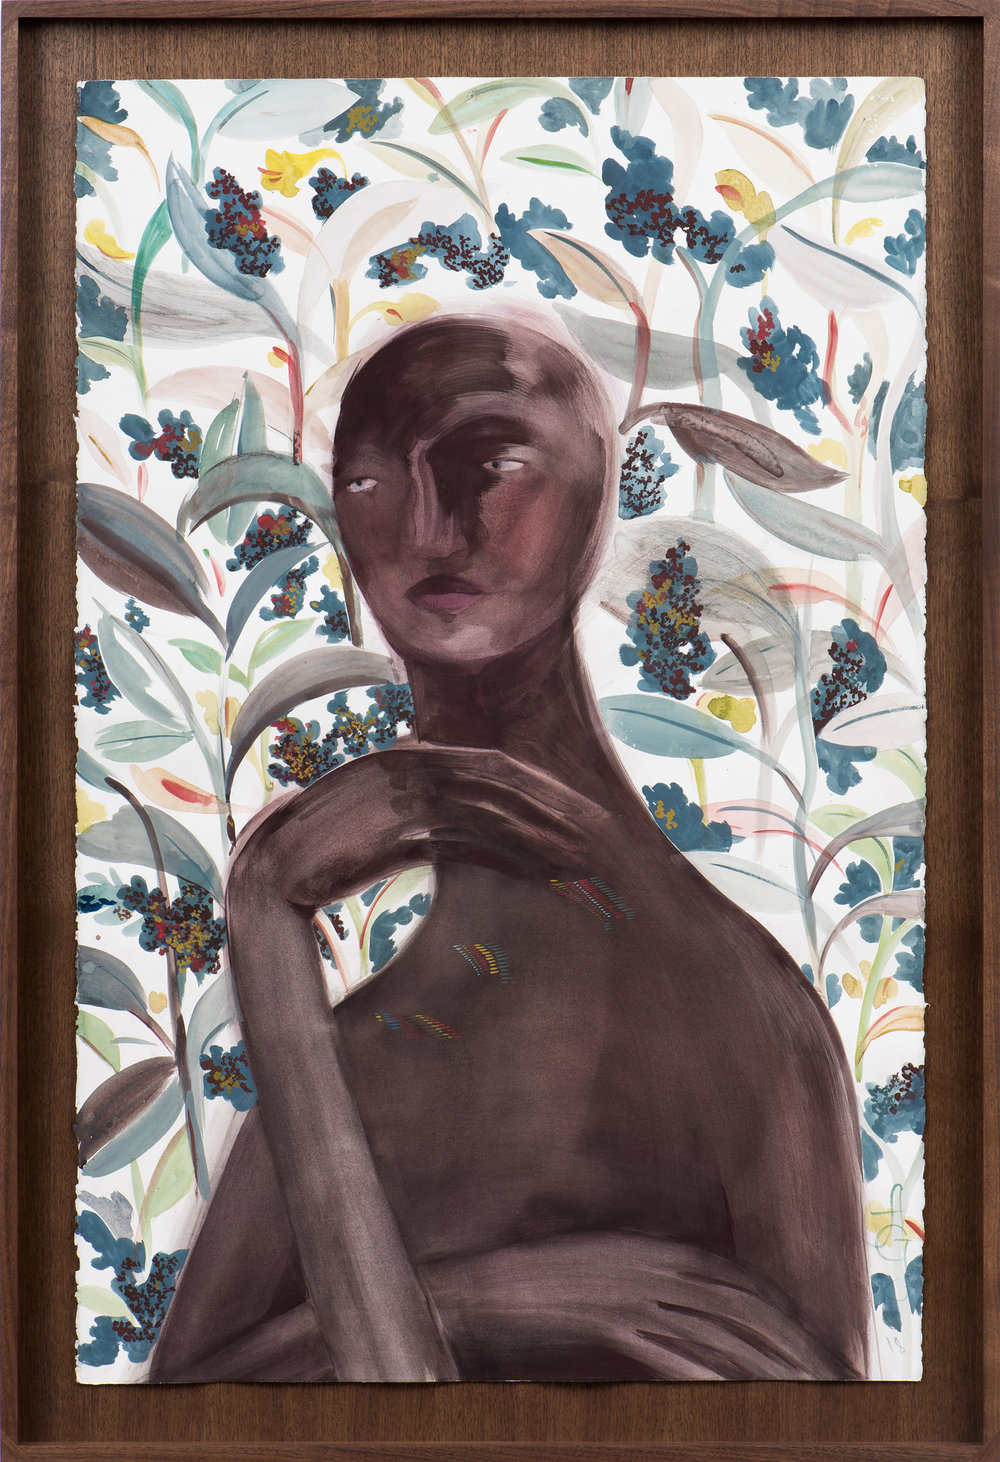 Abel , 2018 Gouache and watercolor on paper 40 x 26 1/2 inches